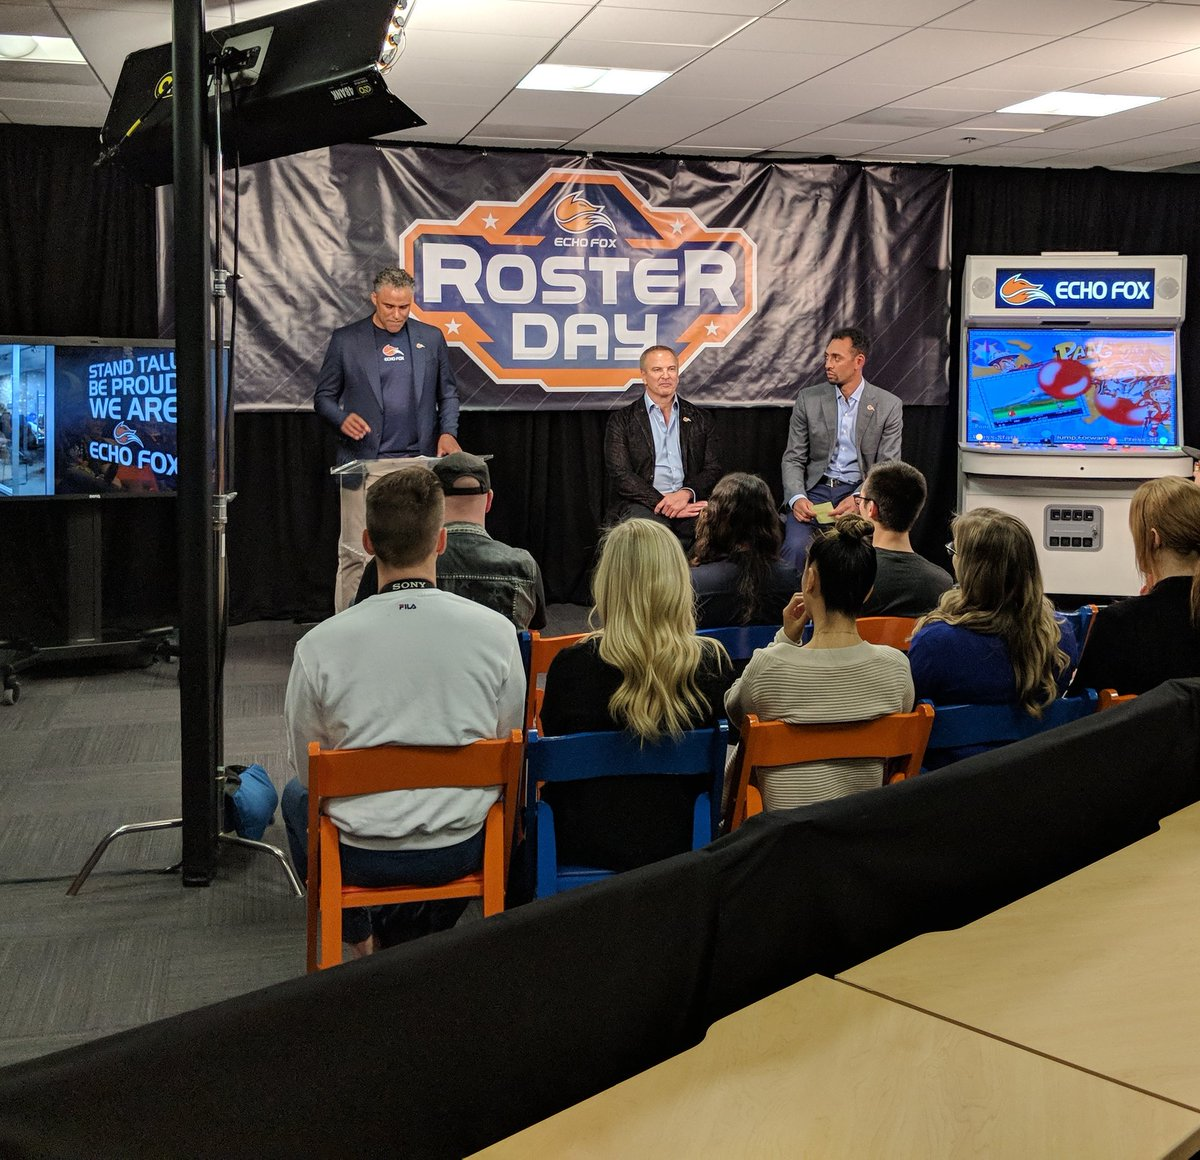 At @echofoxgg roster day. @RickFox givin...